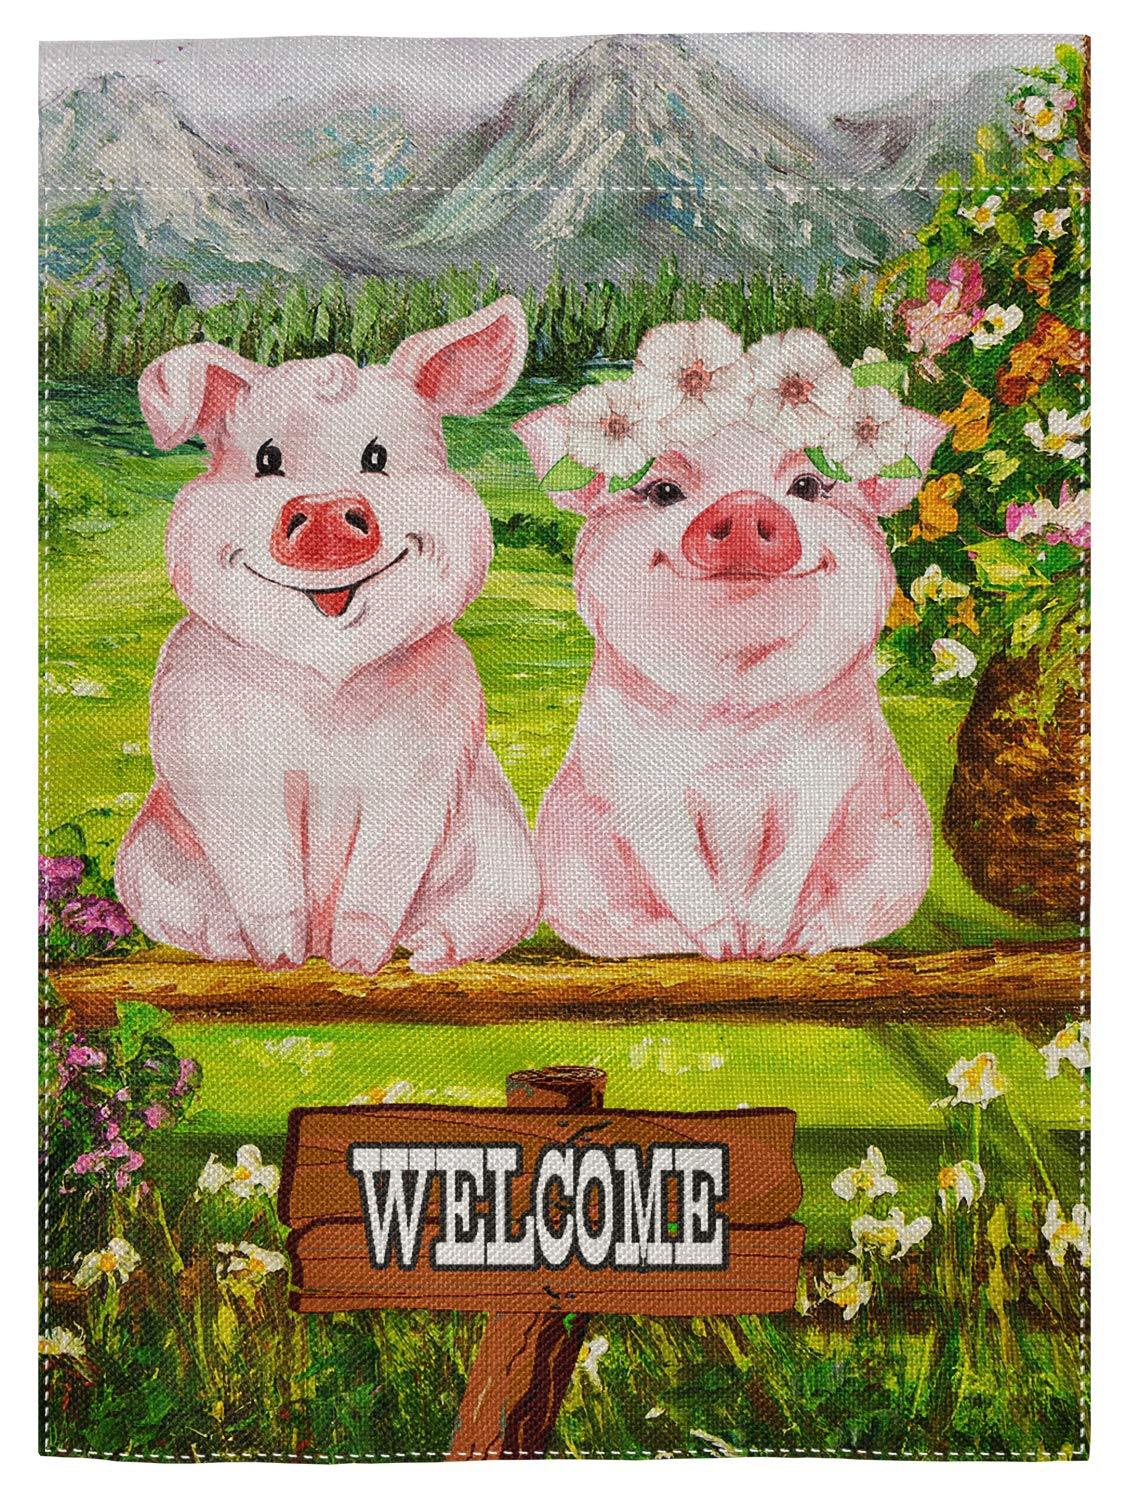 "pingpi Decorative Outdoor Double Sided Funny Pig Garden Flag Welcome Quote, House Yard Flag, Garden Yard Decorations, Seasonal Outdoor Flag 12.5""x18"""